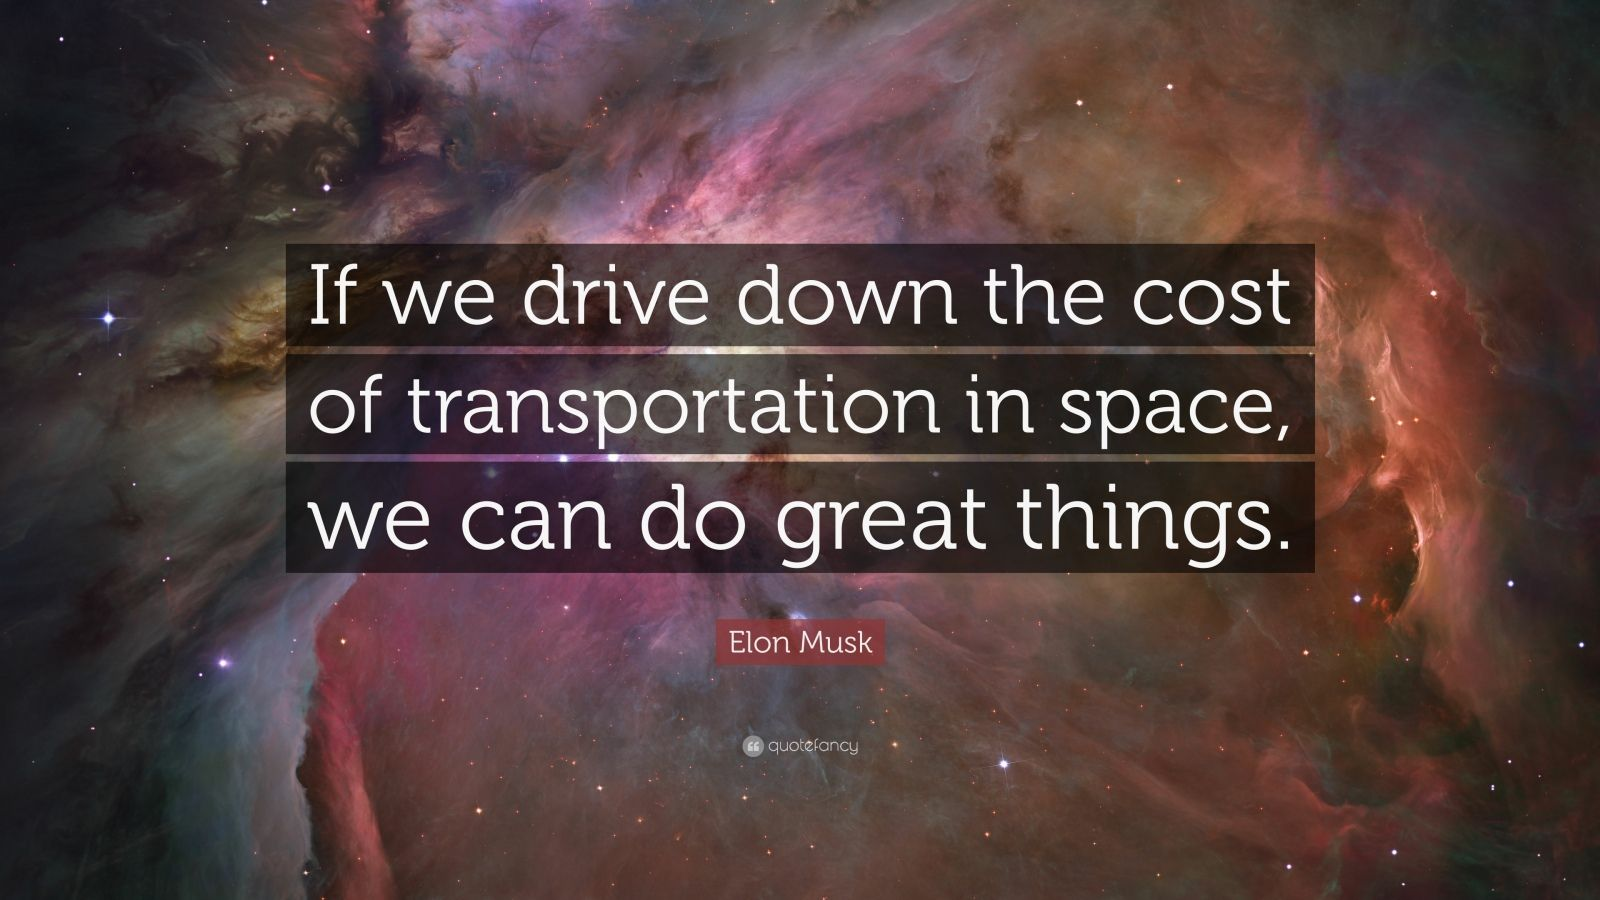 """Elon Musk Quote: """"If we drive down the cost of transportation in space, we can do great things."""""""